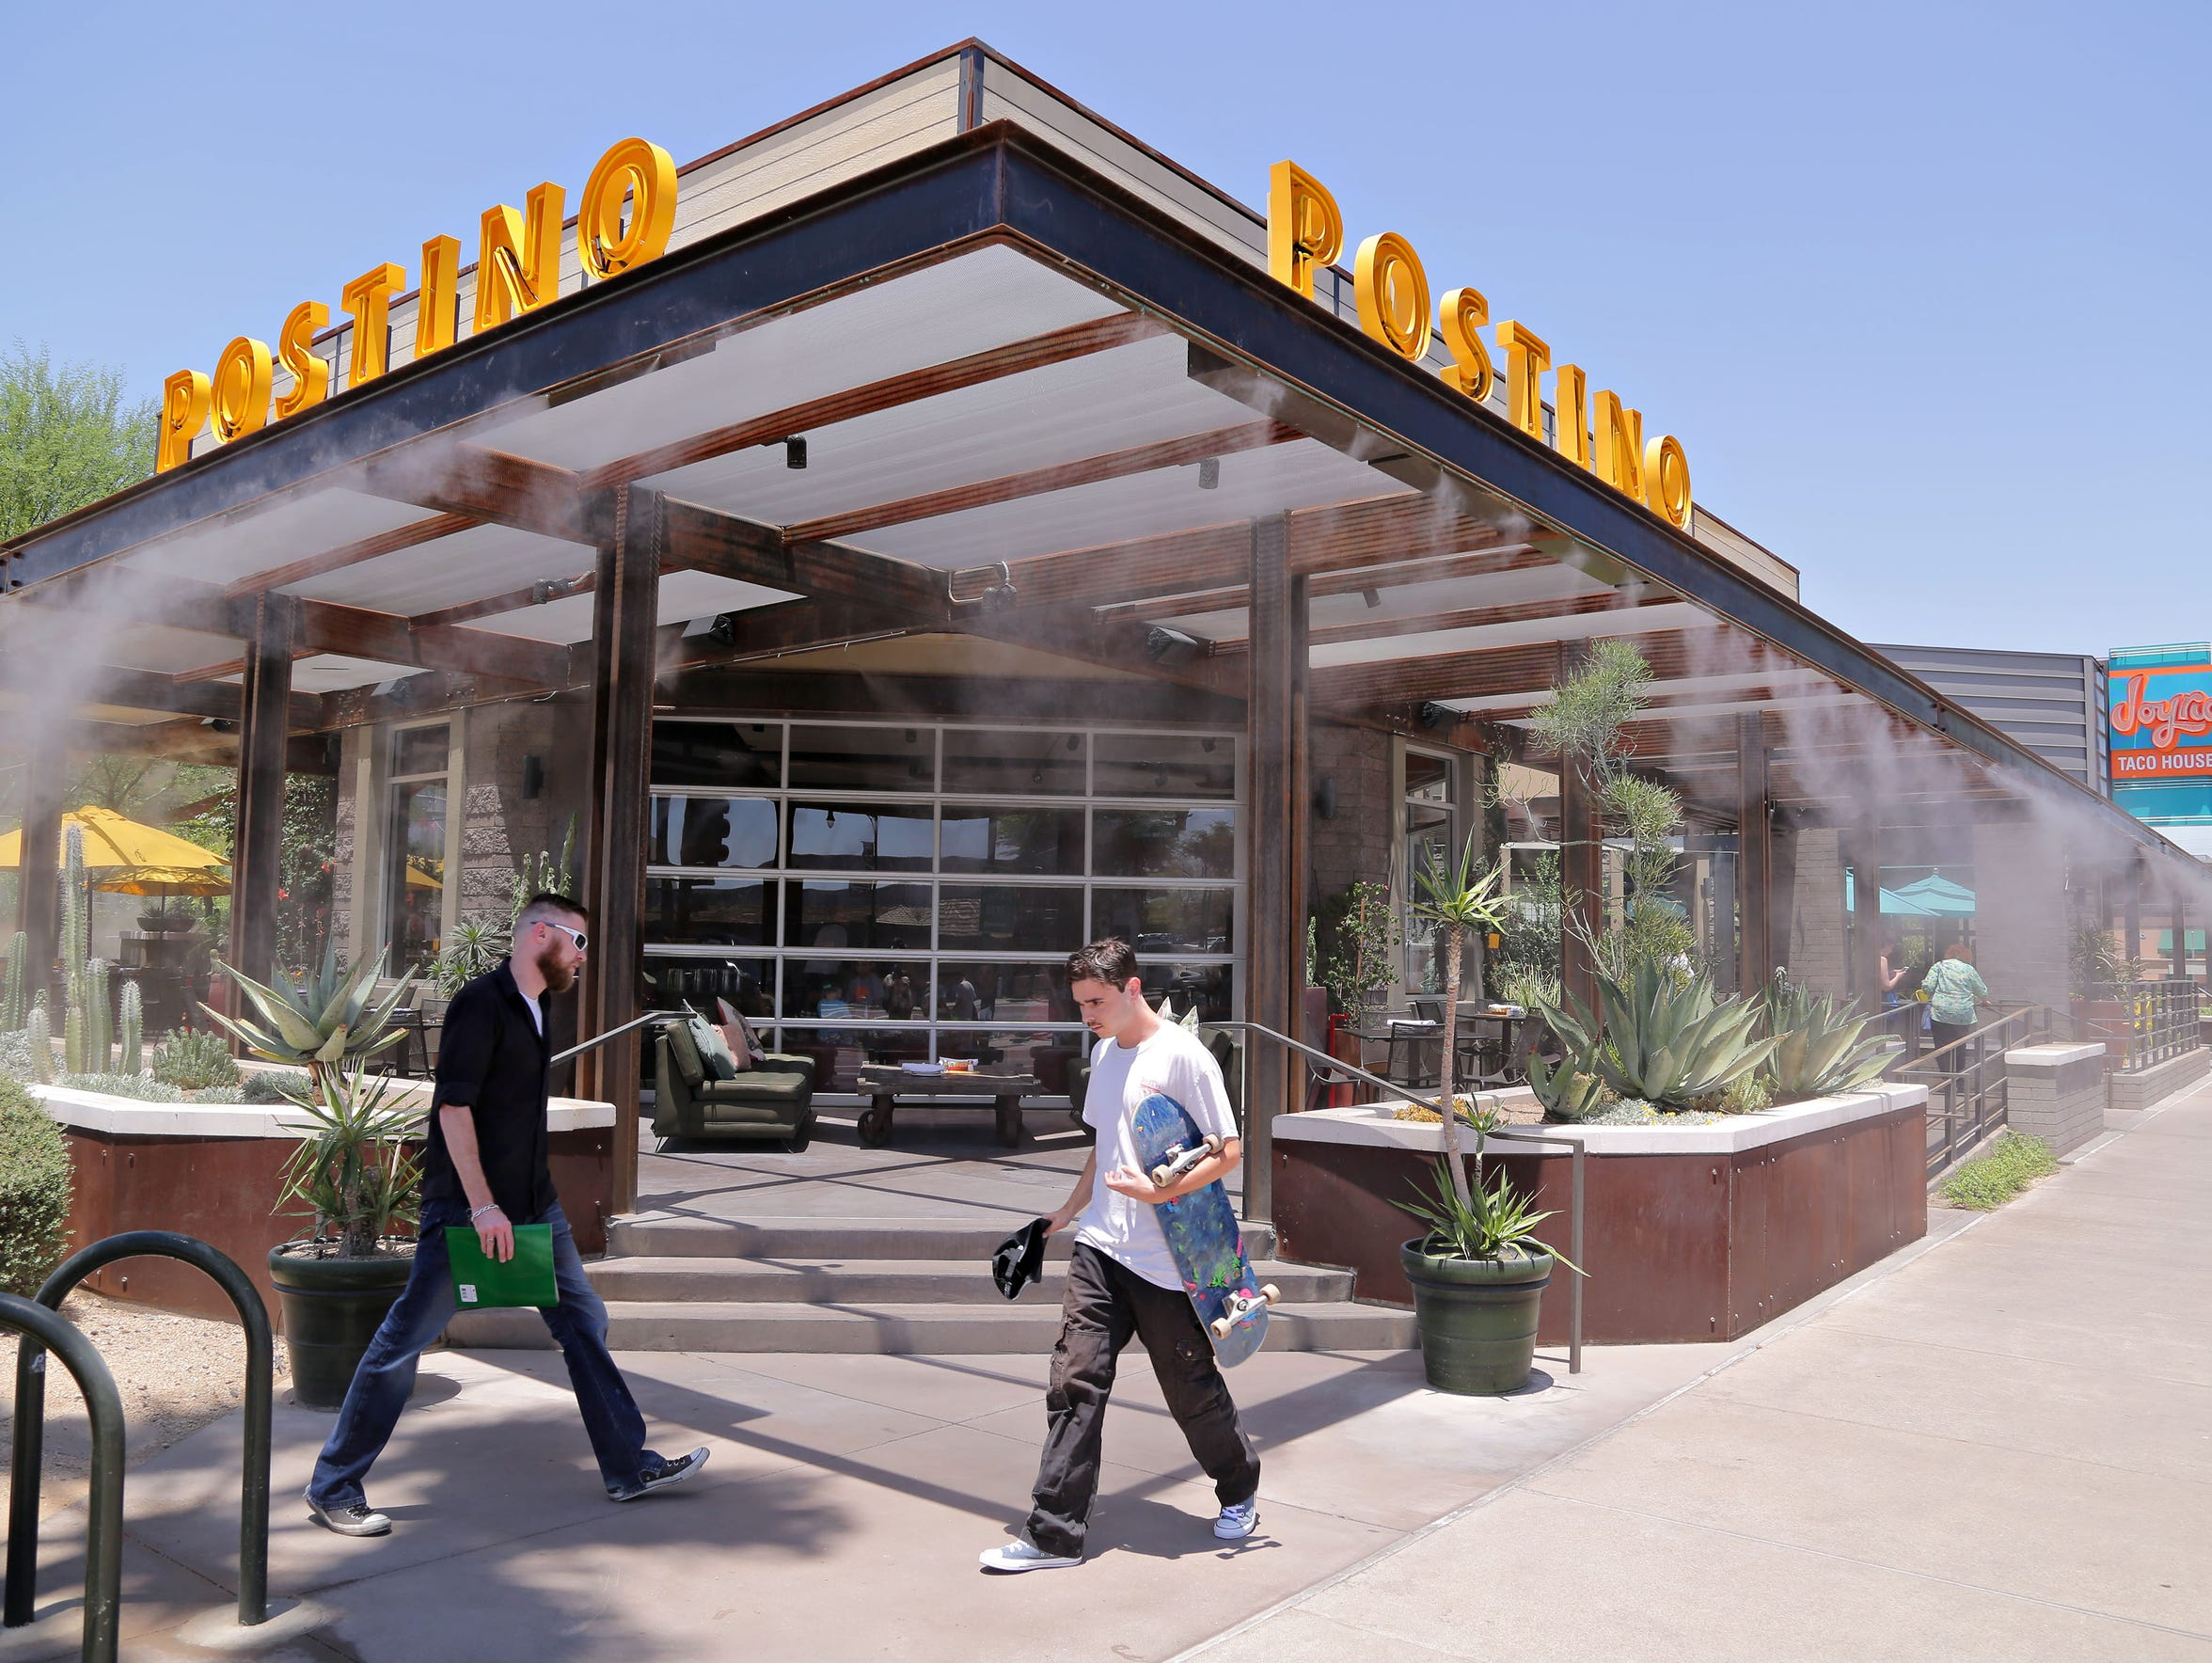 Lunch time patrons flock to restaurants such as Postino